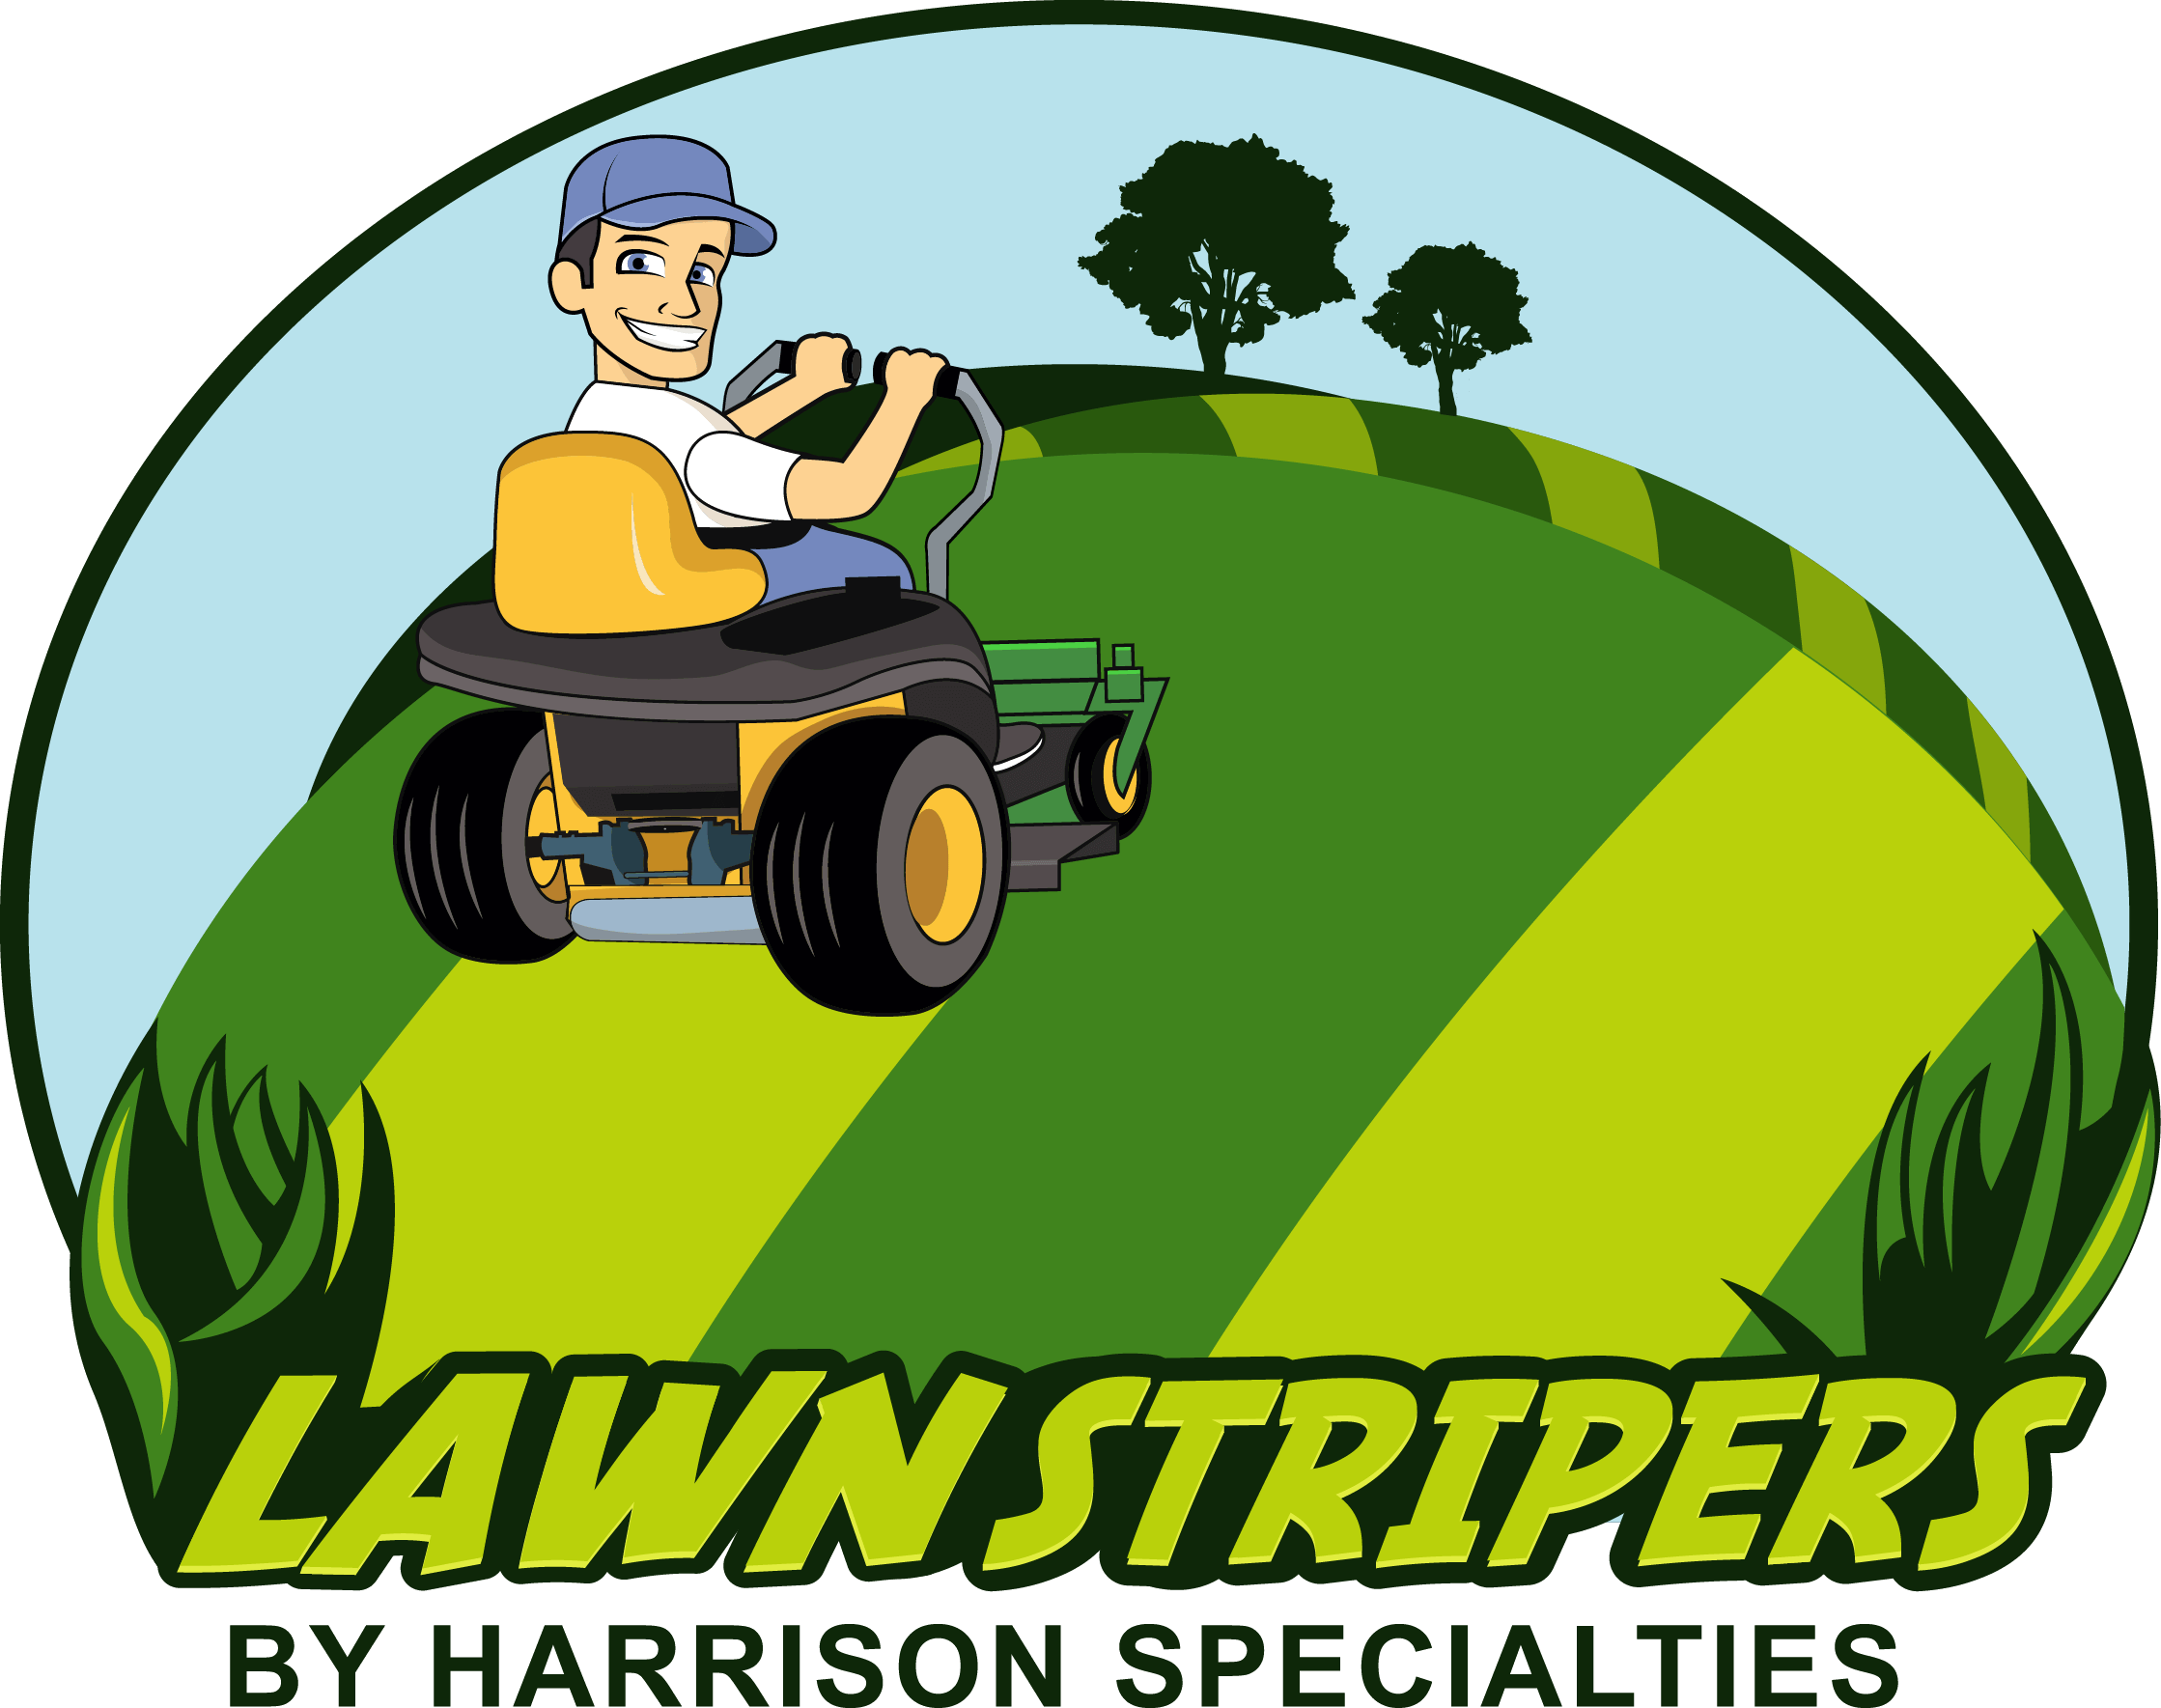 Woodturning tools stripers motorcycle. Shears clipart lawn tool